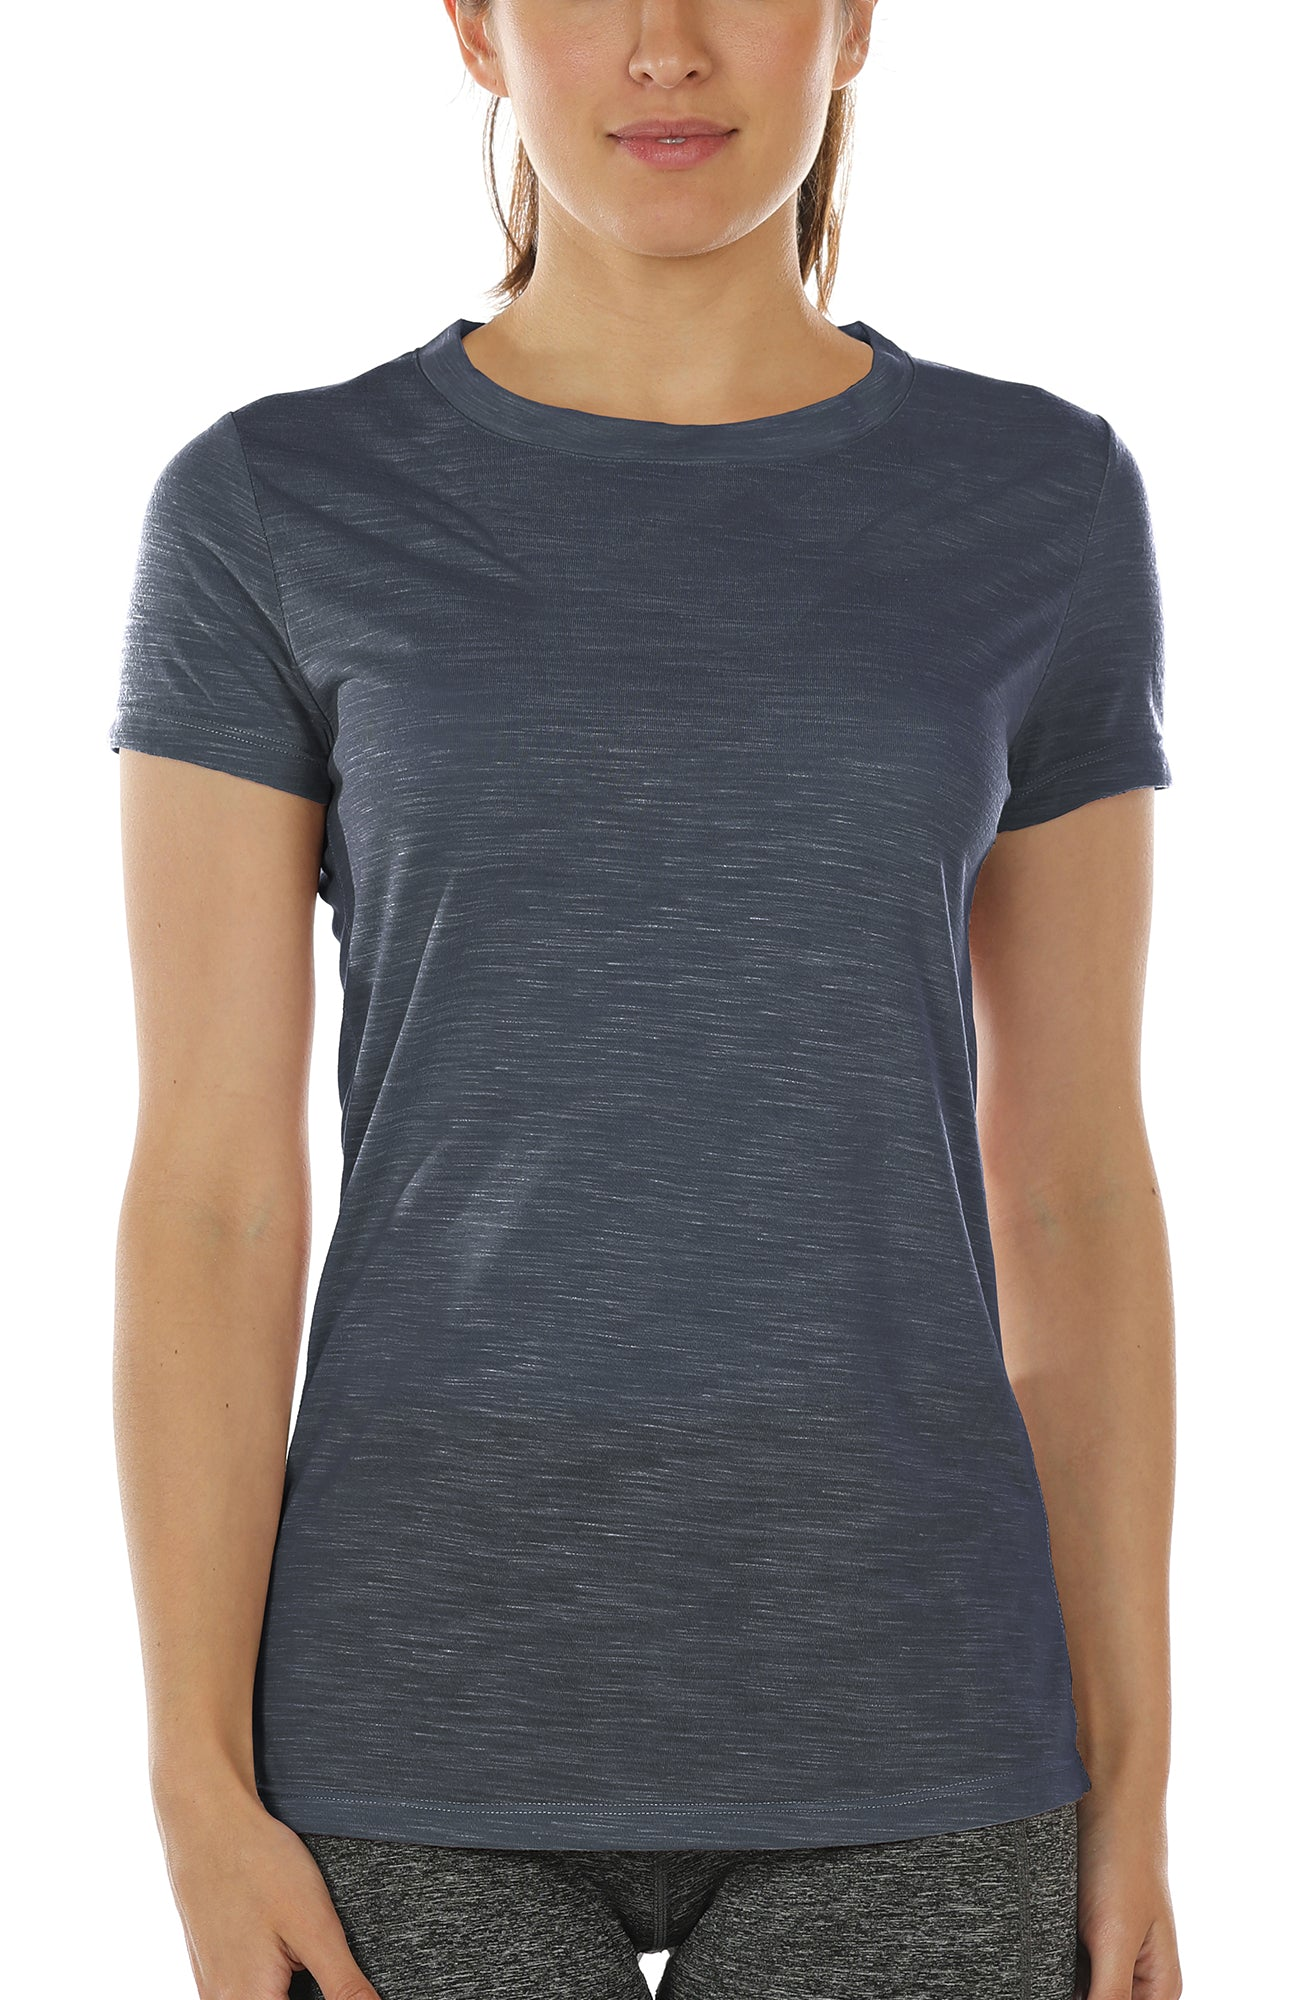 7905455883e7a icyzone Workout Shirts for Women - Yoga Tops Gym Clothes Running Exercise  Athletic T-Shirts